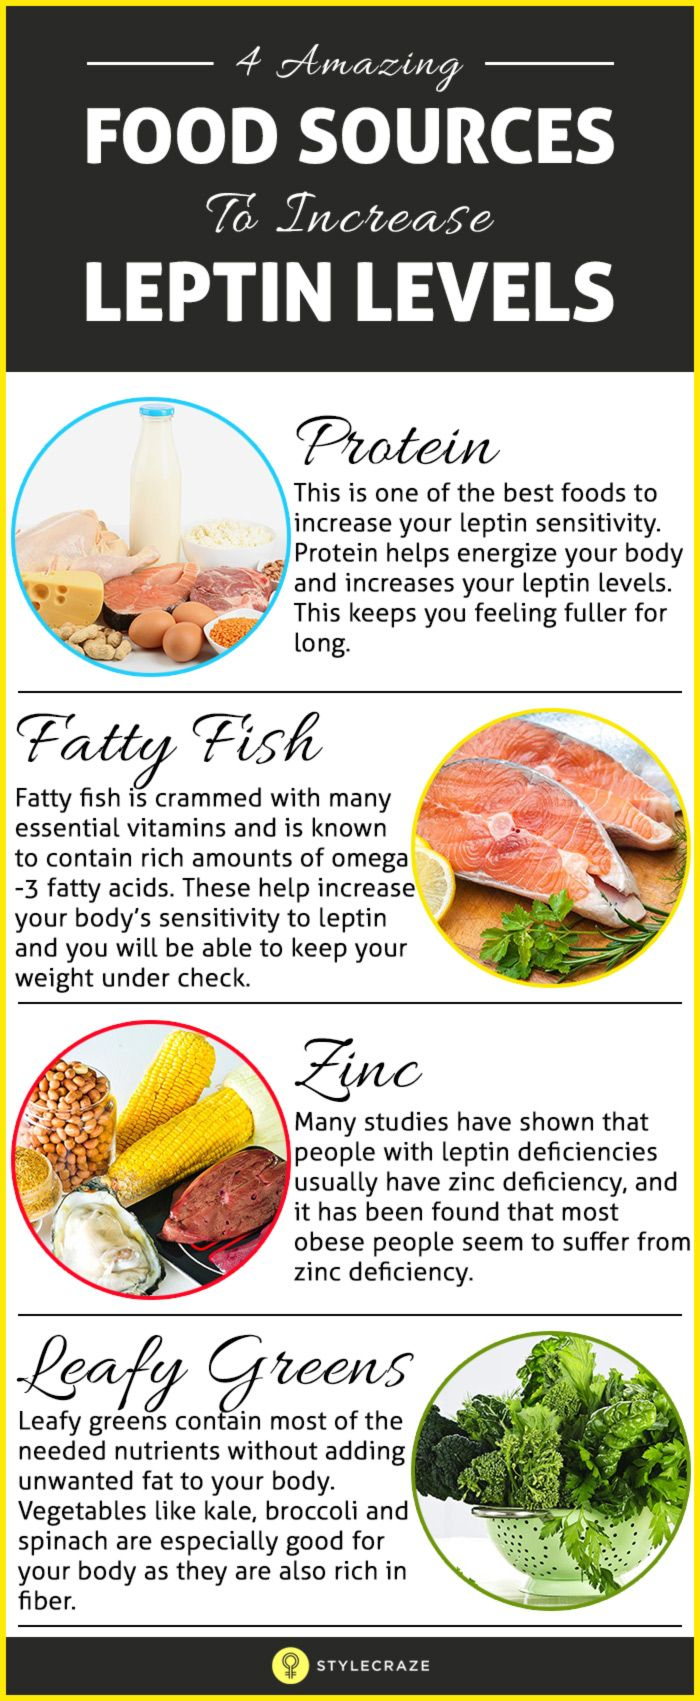 Did you know that a hormone produced in the fat cells, actually stimulates your metabolism and tells the brain when you have had enough? Well, as incredible as it may sound, 'leptin' does just that. It is important to the body and you can augment leptin levels in your body as it is an essential compound that provides many health benefits.